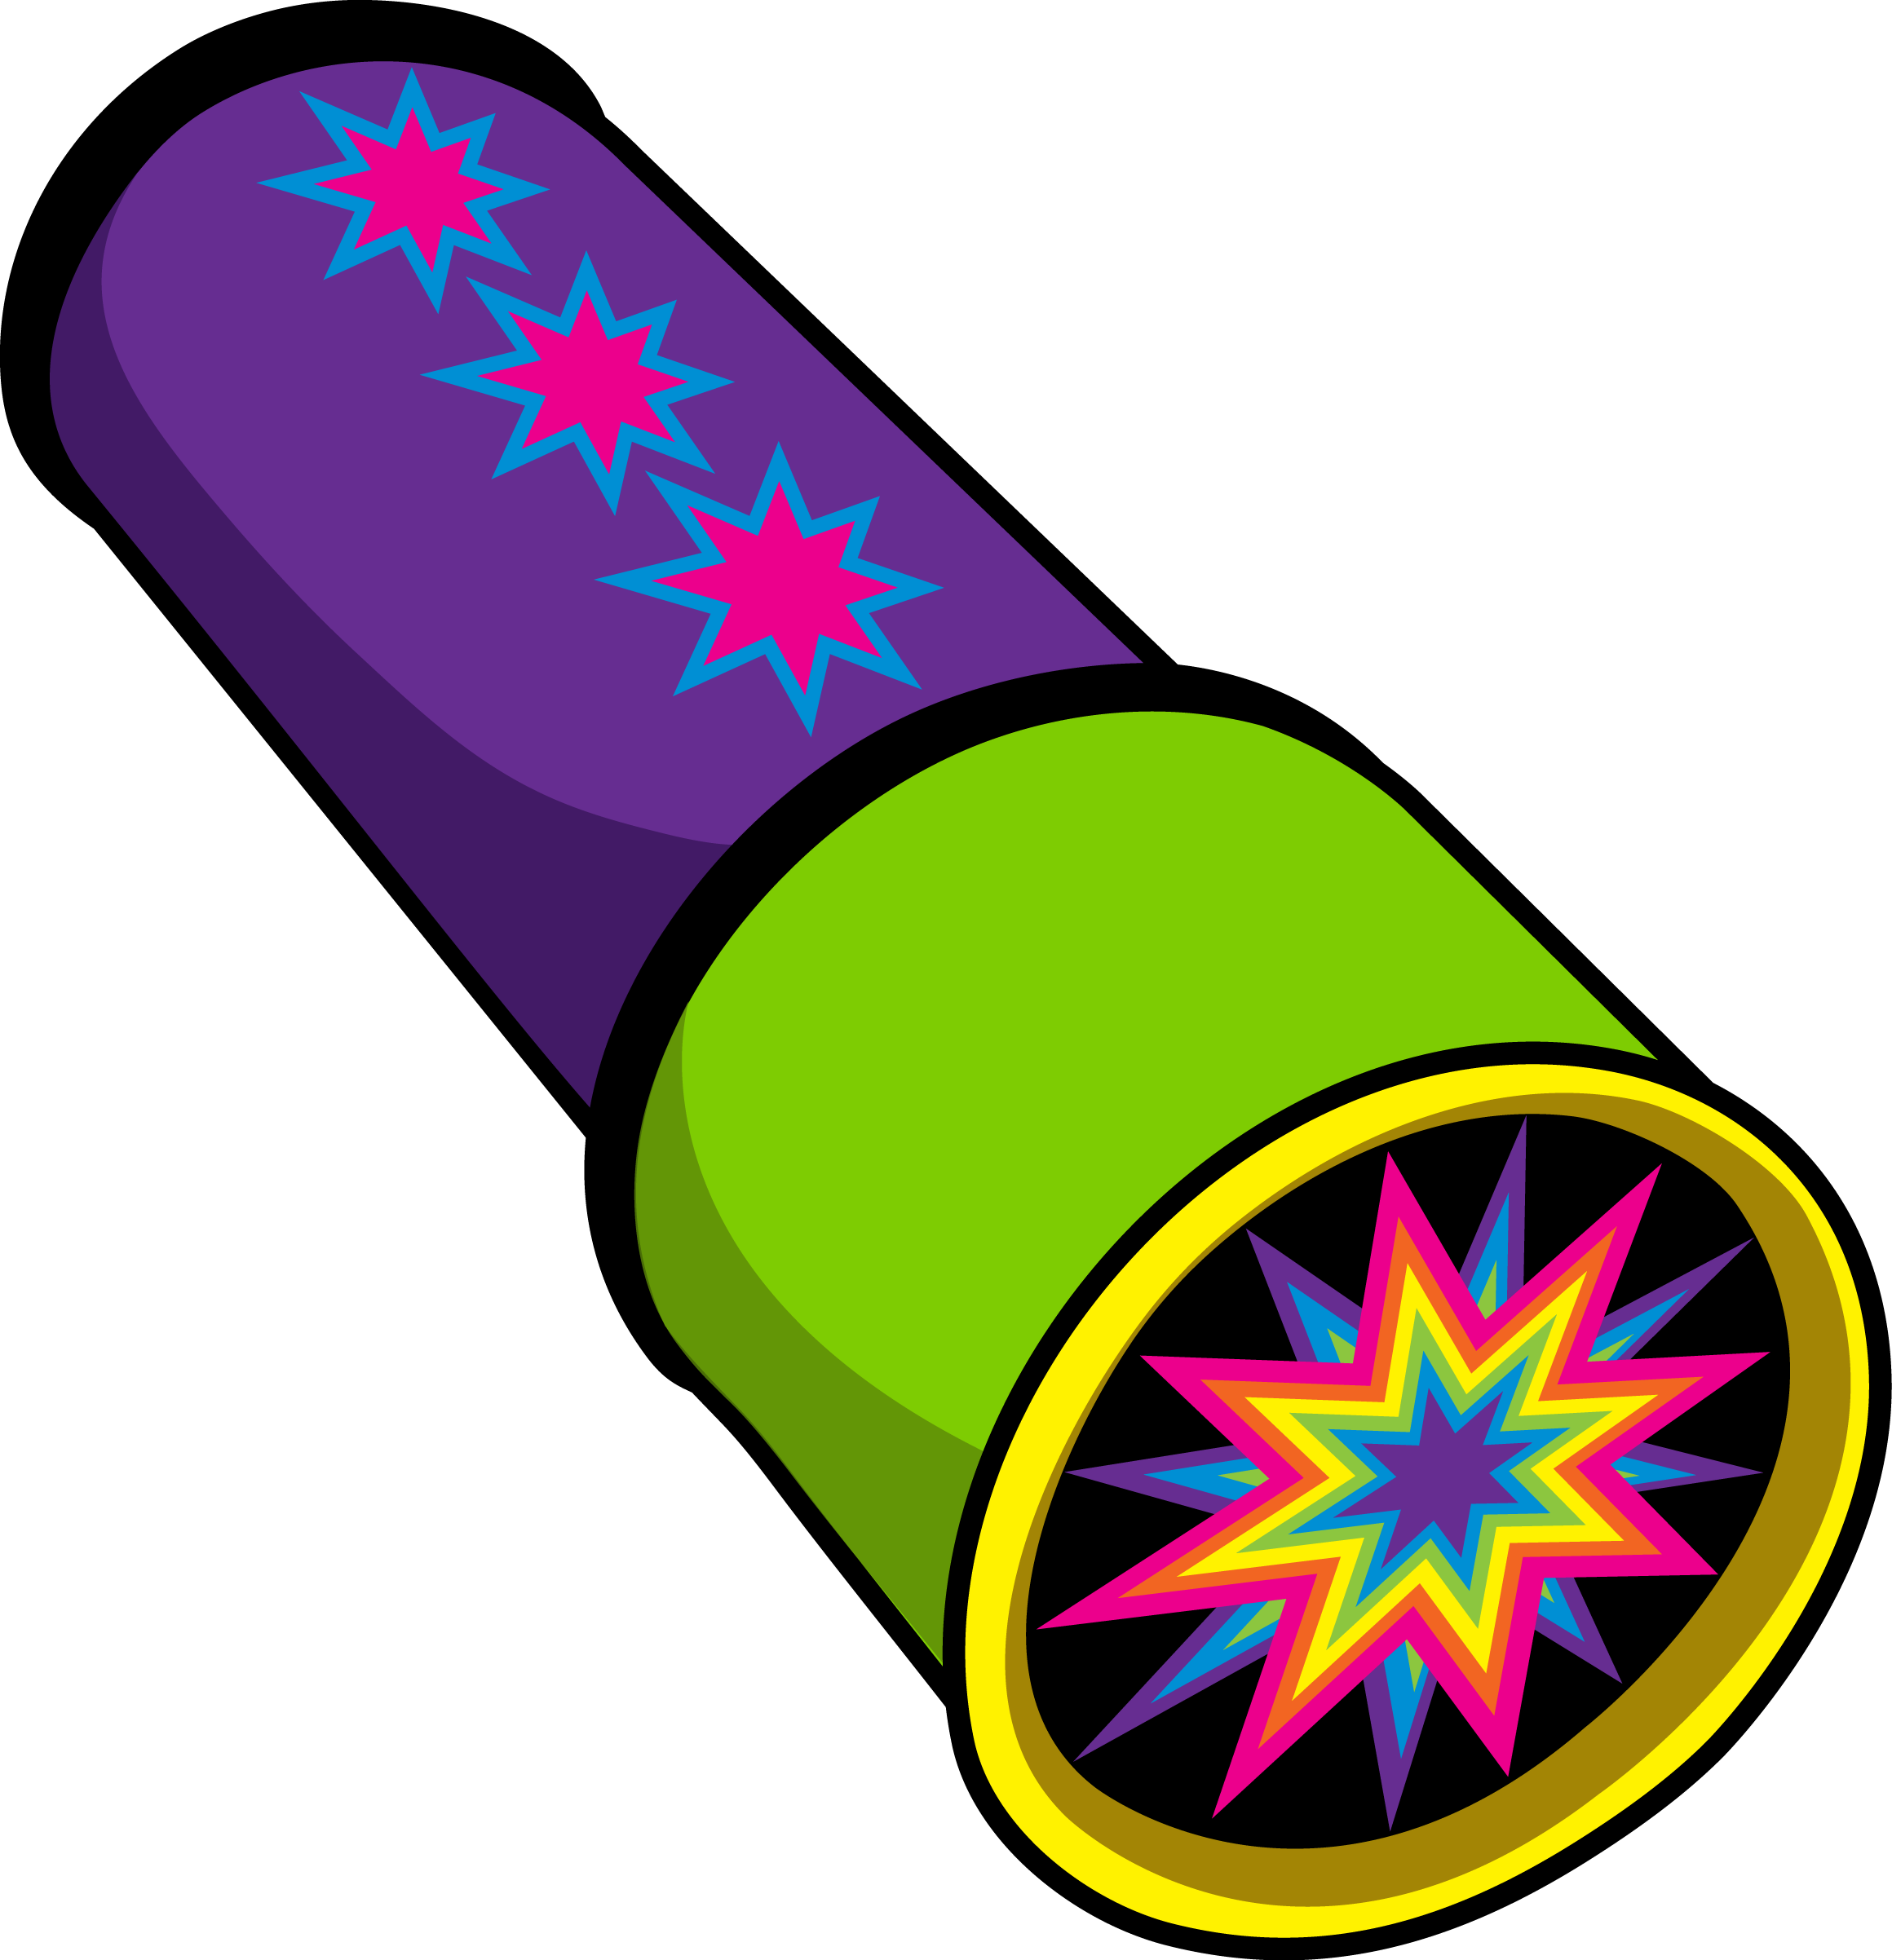 Moustache clipart neon. Psychedelic kaleidoscope free clip